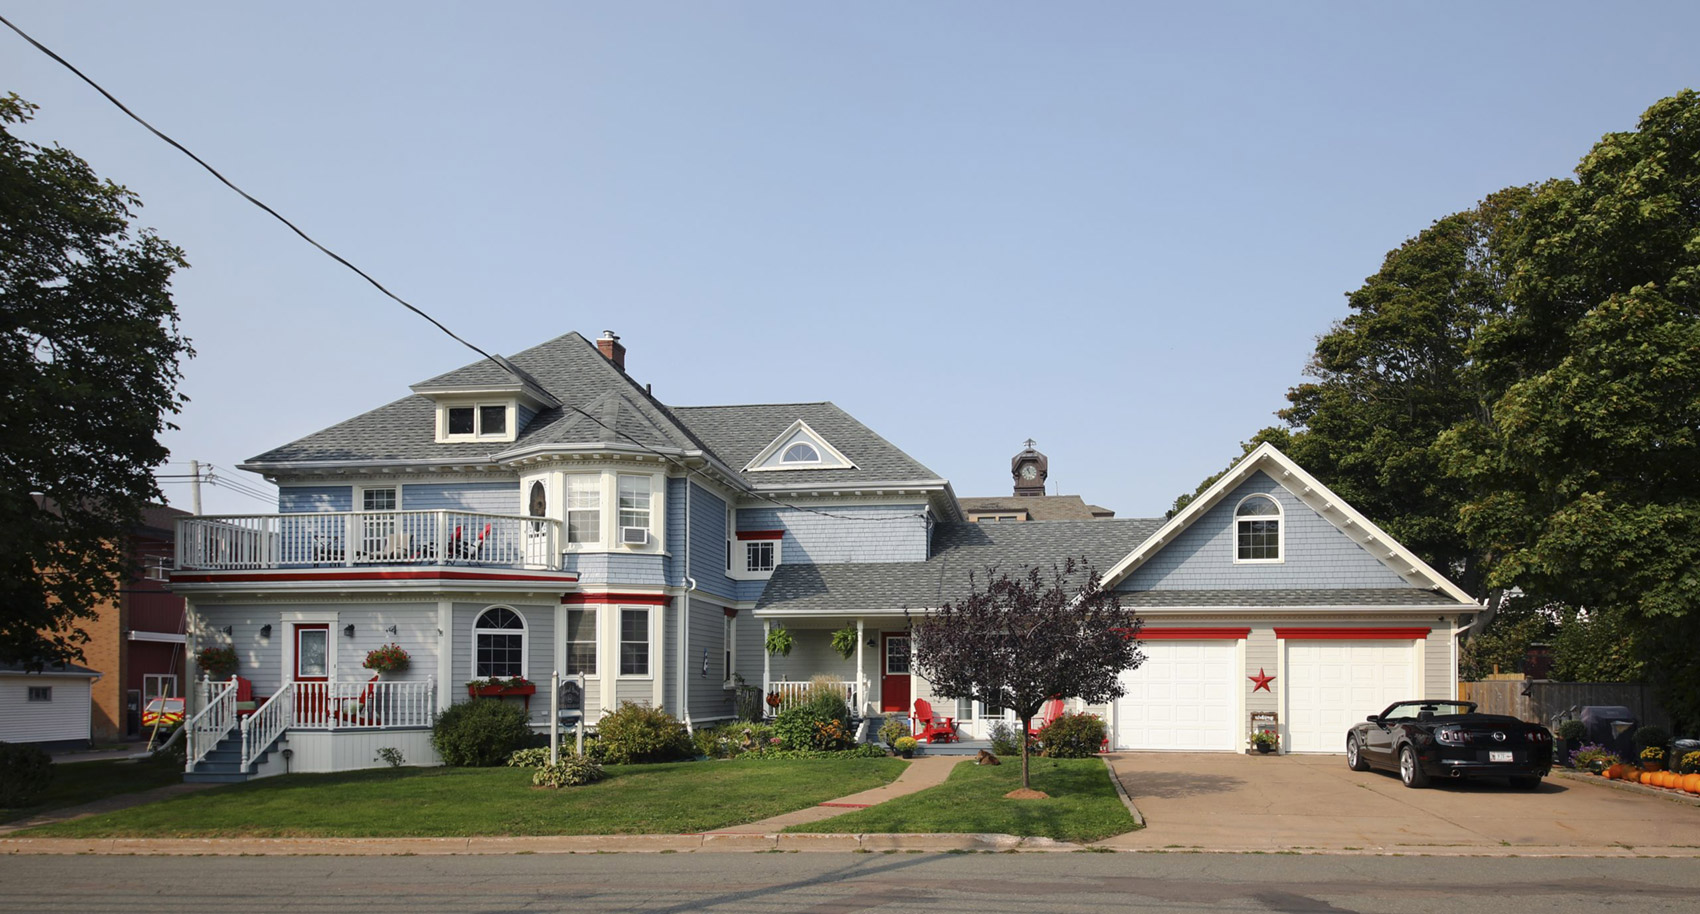 Island Home B&B - Close to the beach and Downtown Summerside PEI